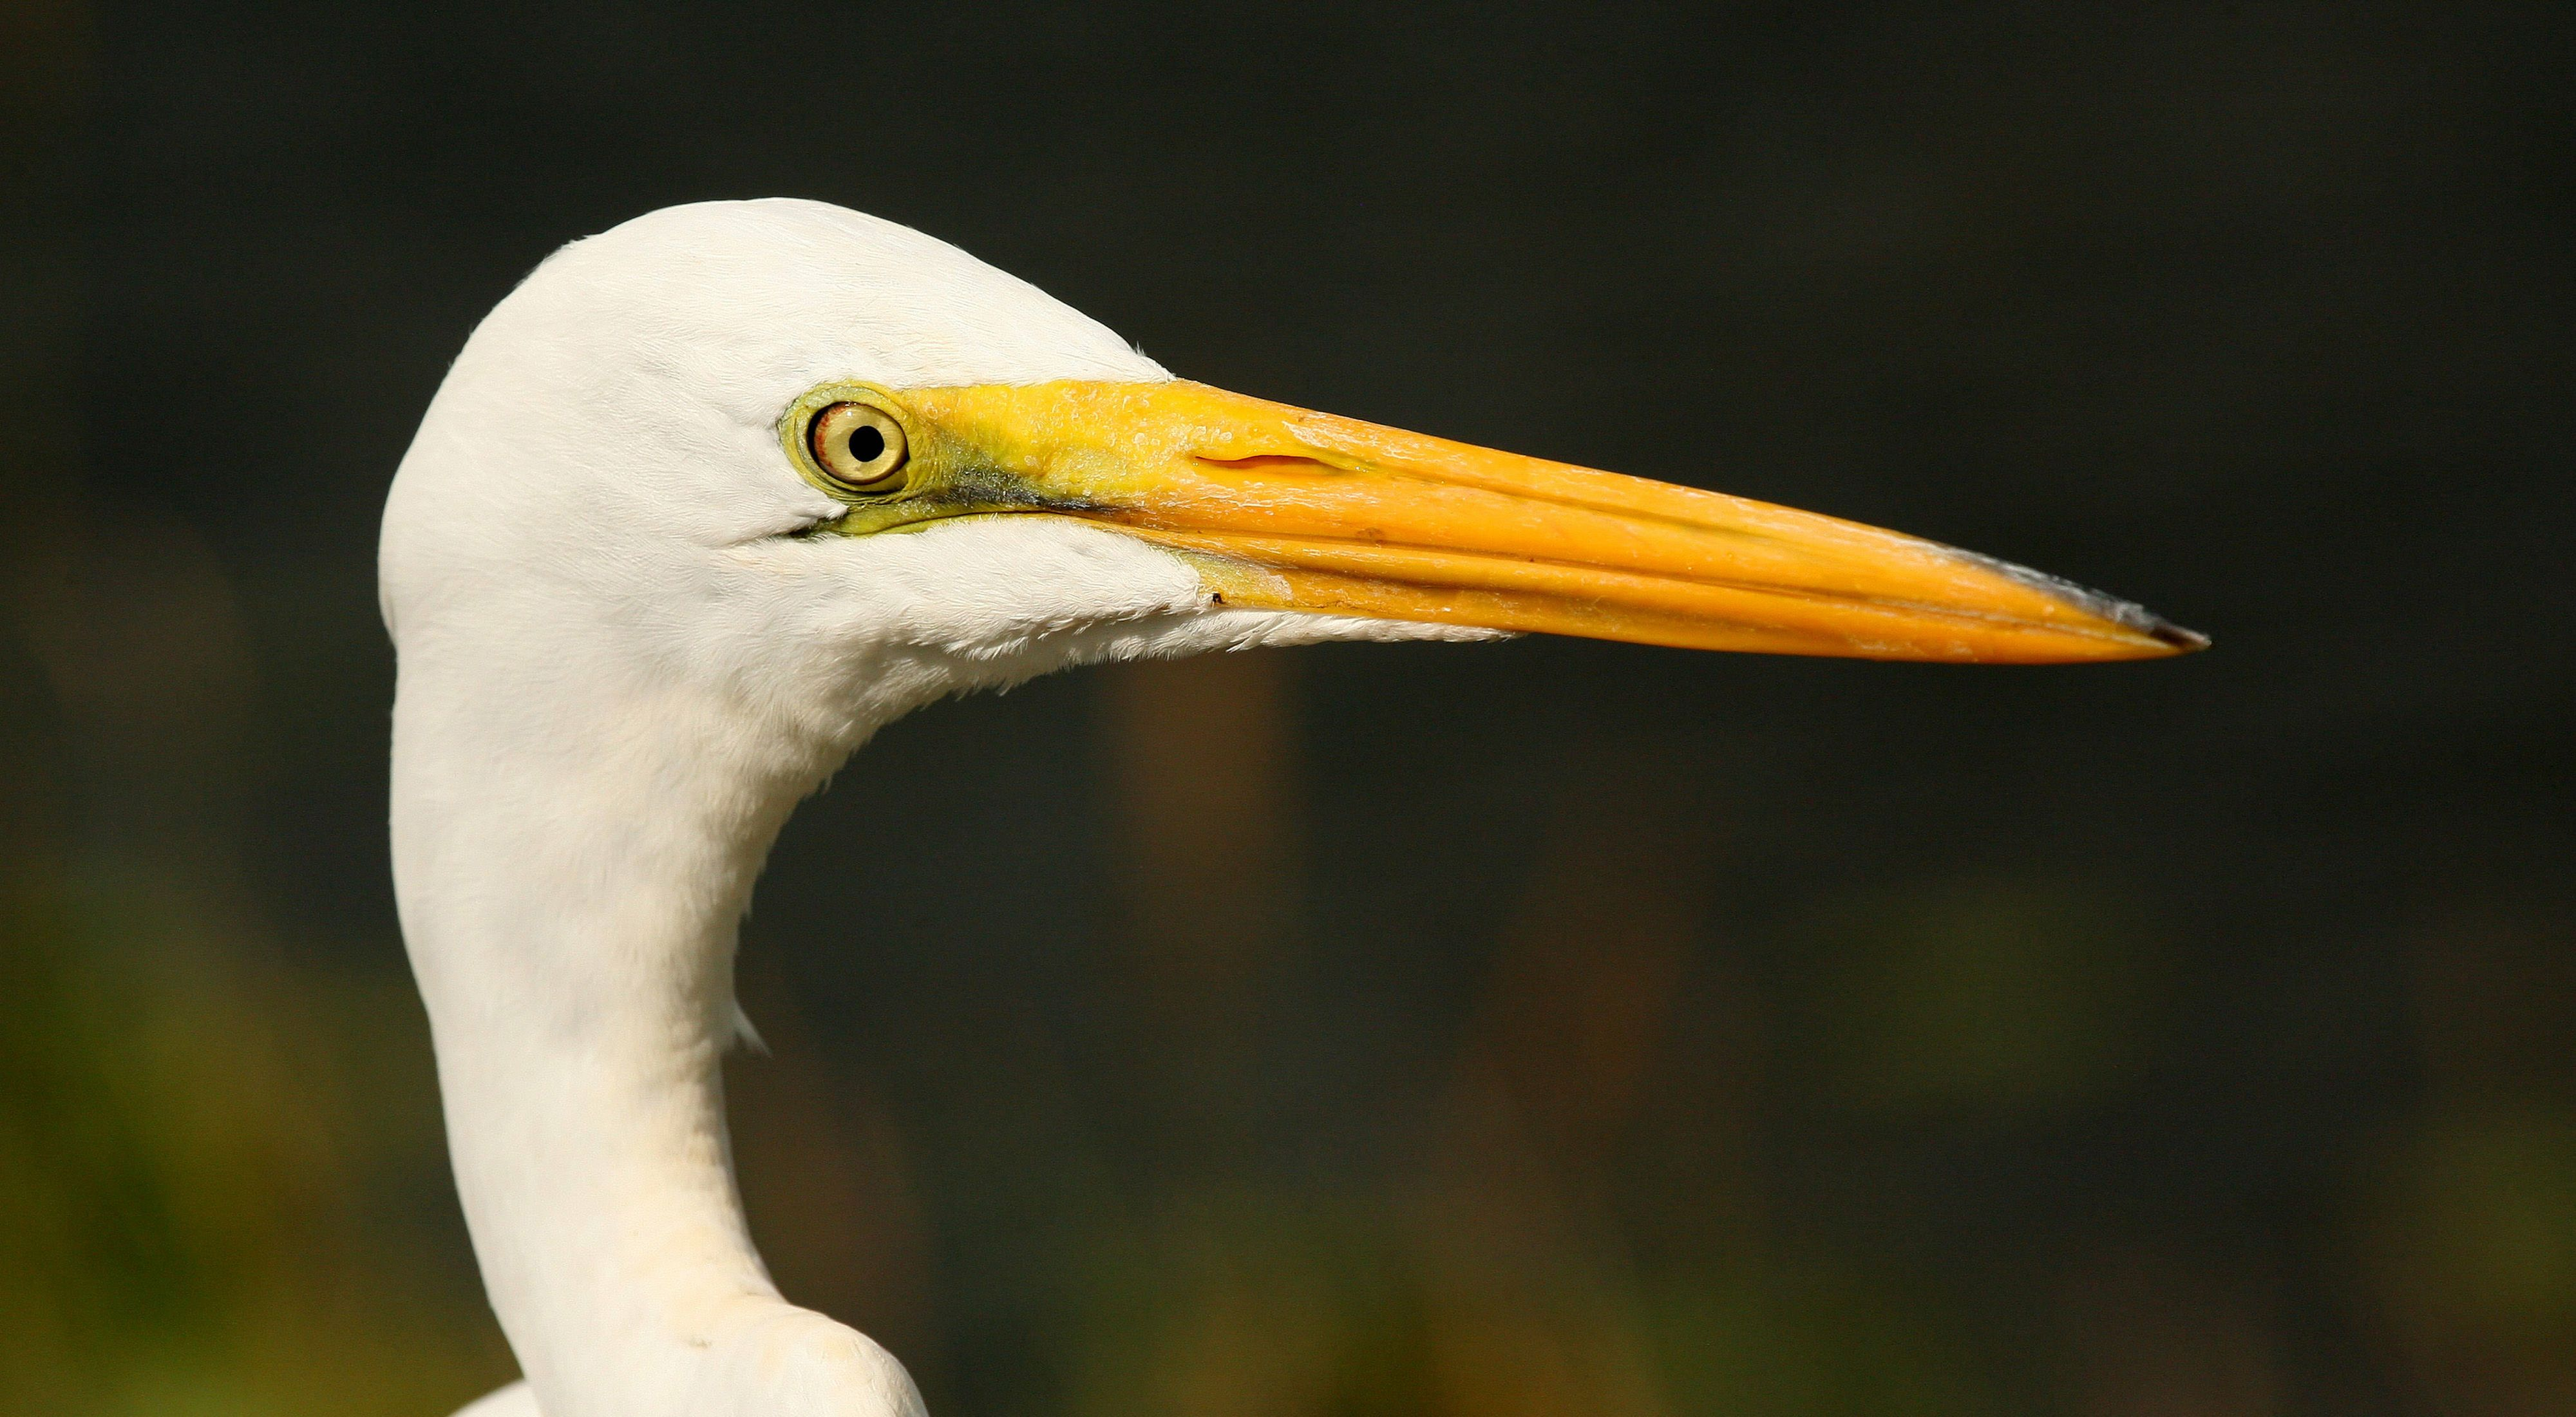 A great egret's migratory range includes both the Tiger Creek and Apalachicola Bluffs & Ravines Preserves